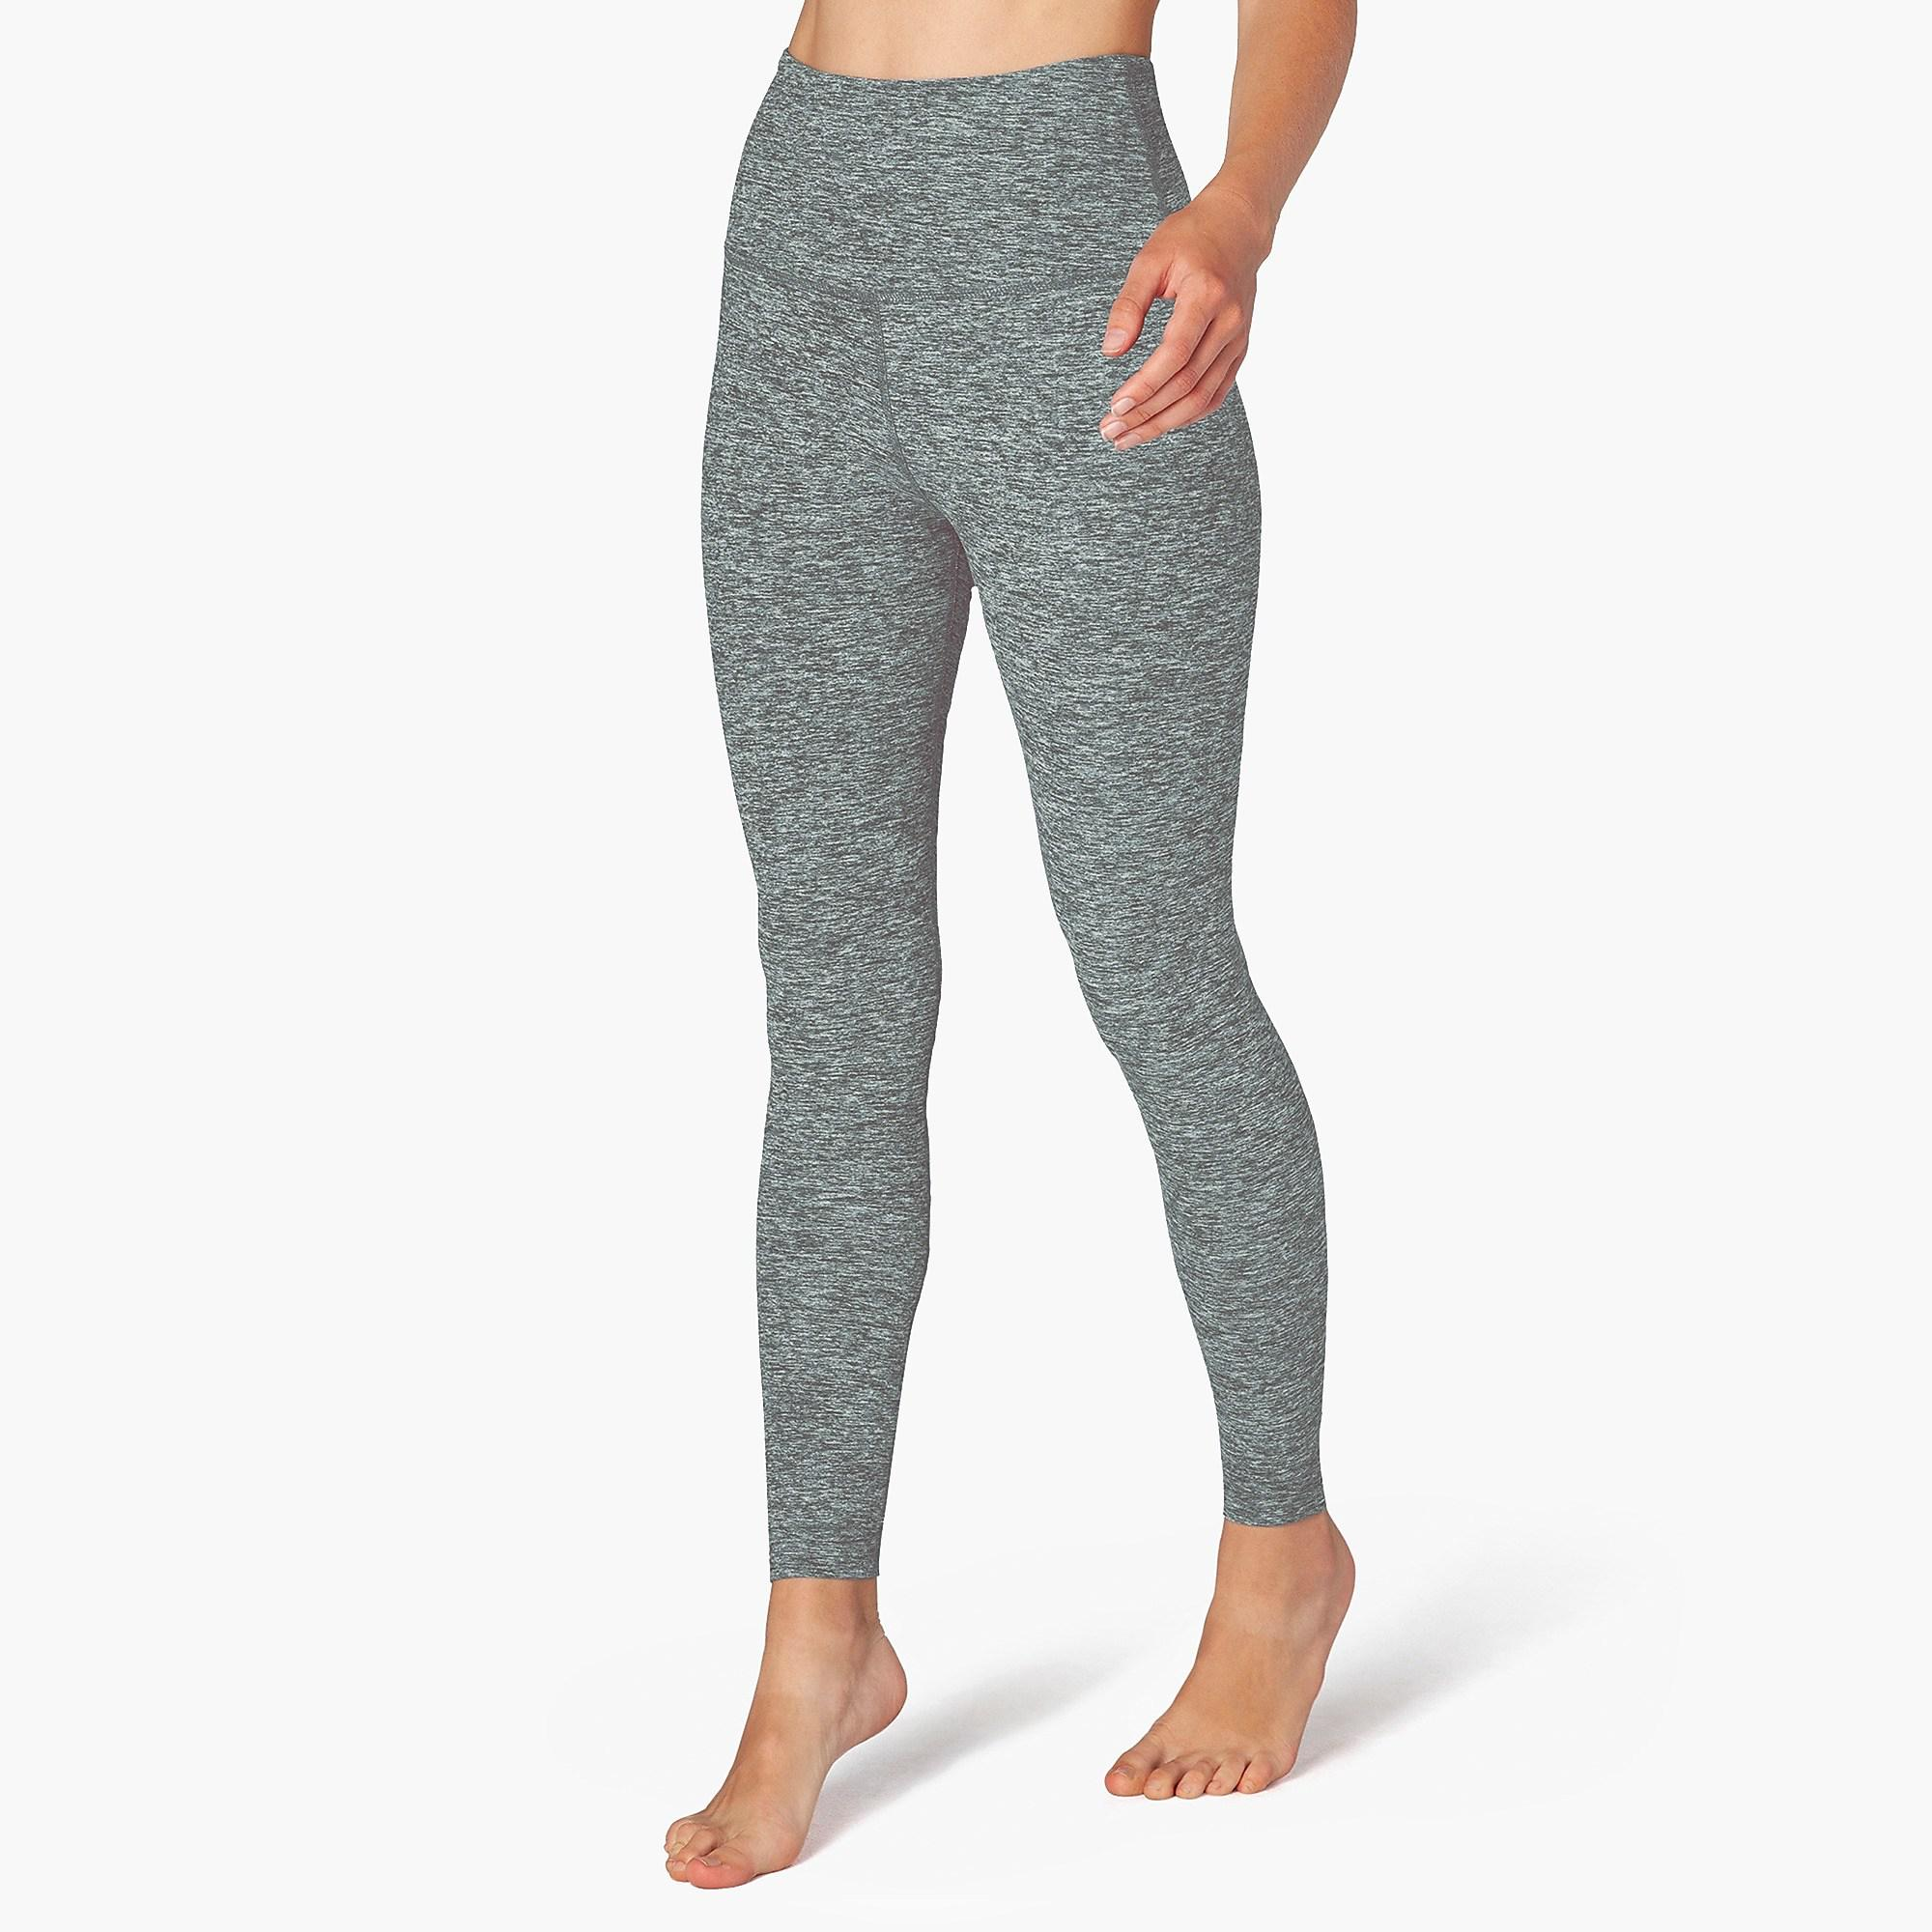 943c623d02 Beyond Yoga - Gray Spacedye Caught In The Midi High-waisted leggings -  Lyst. View fullscreen